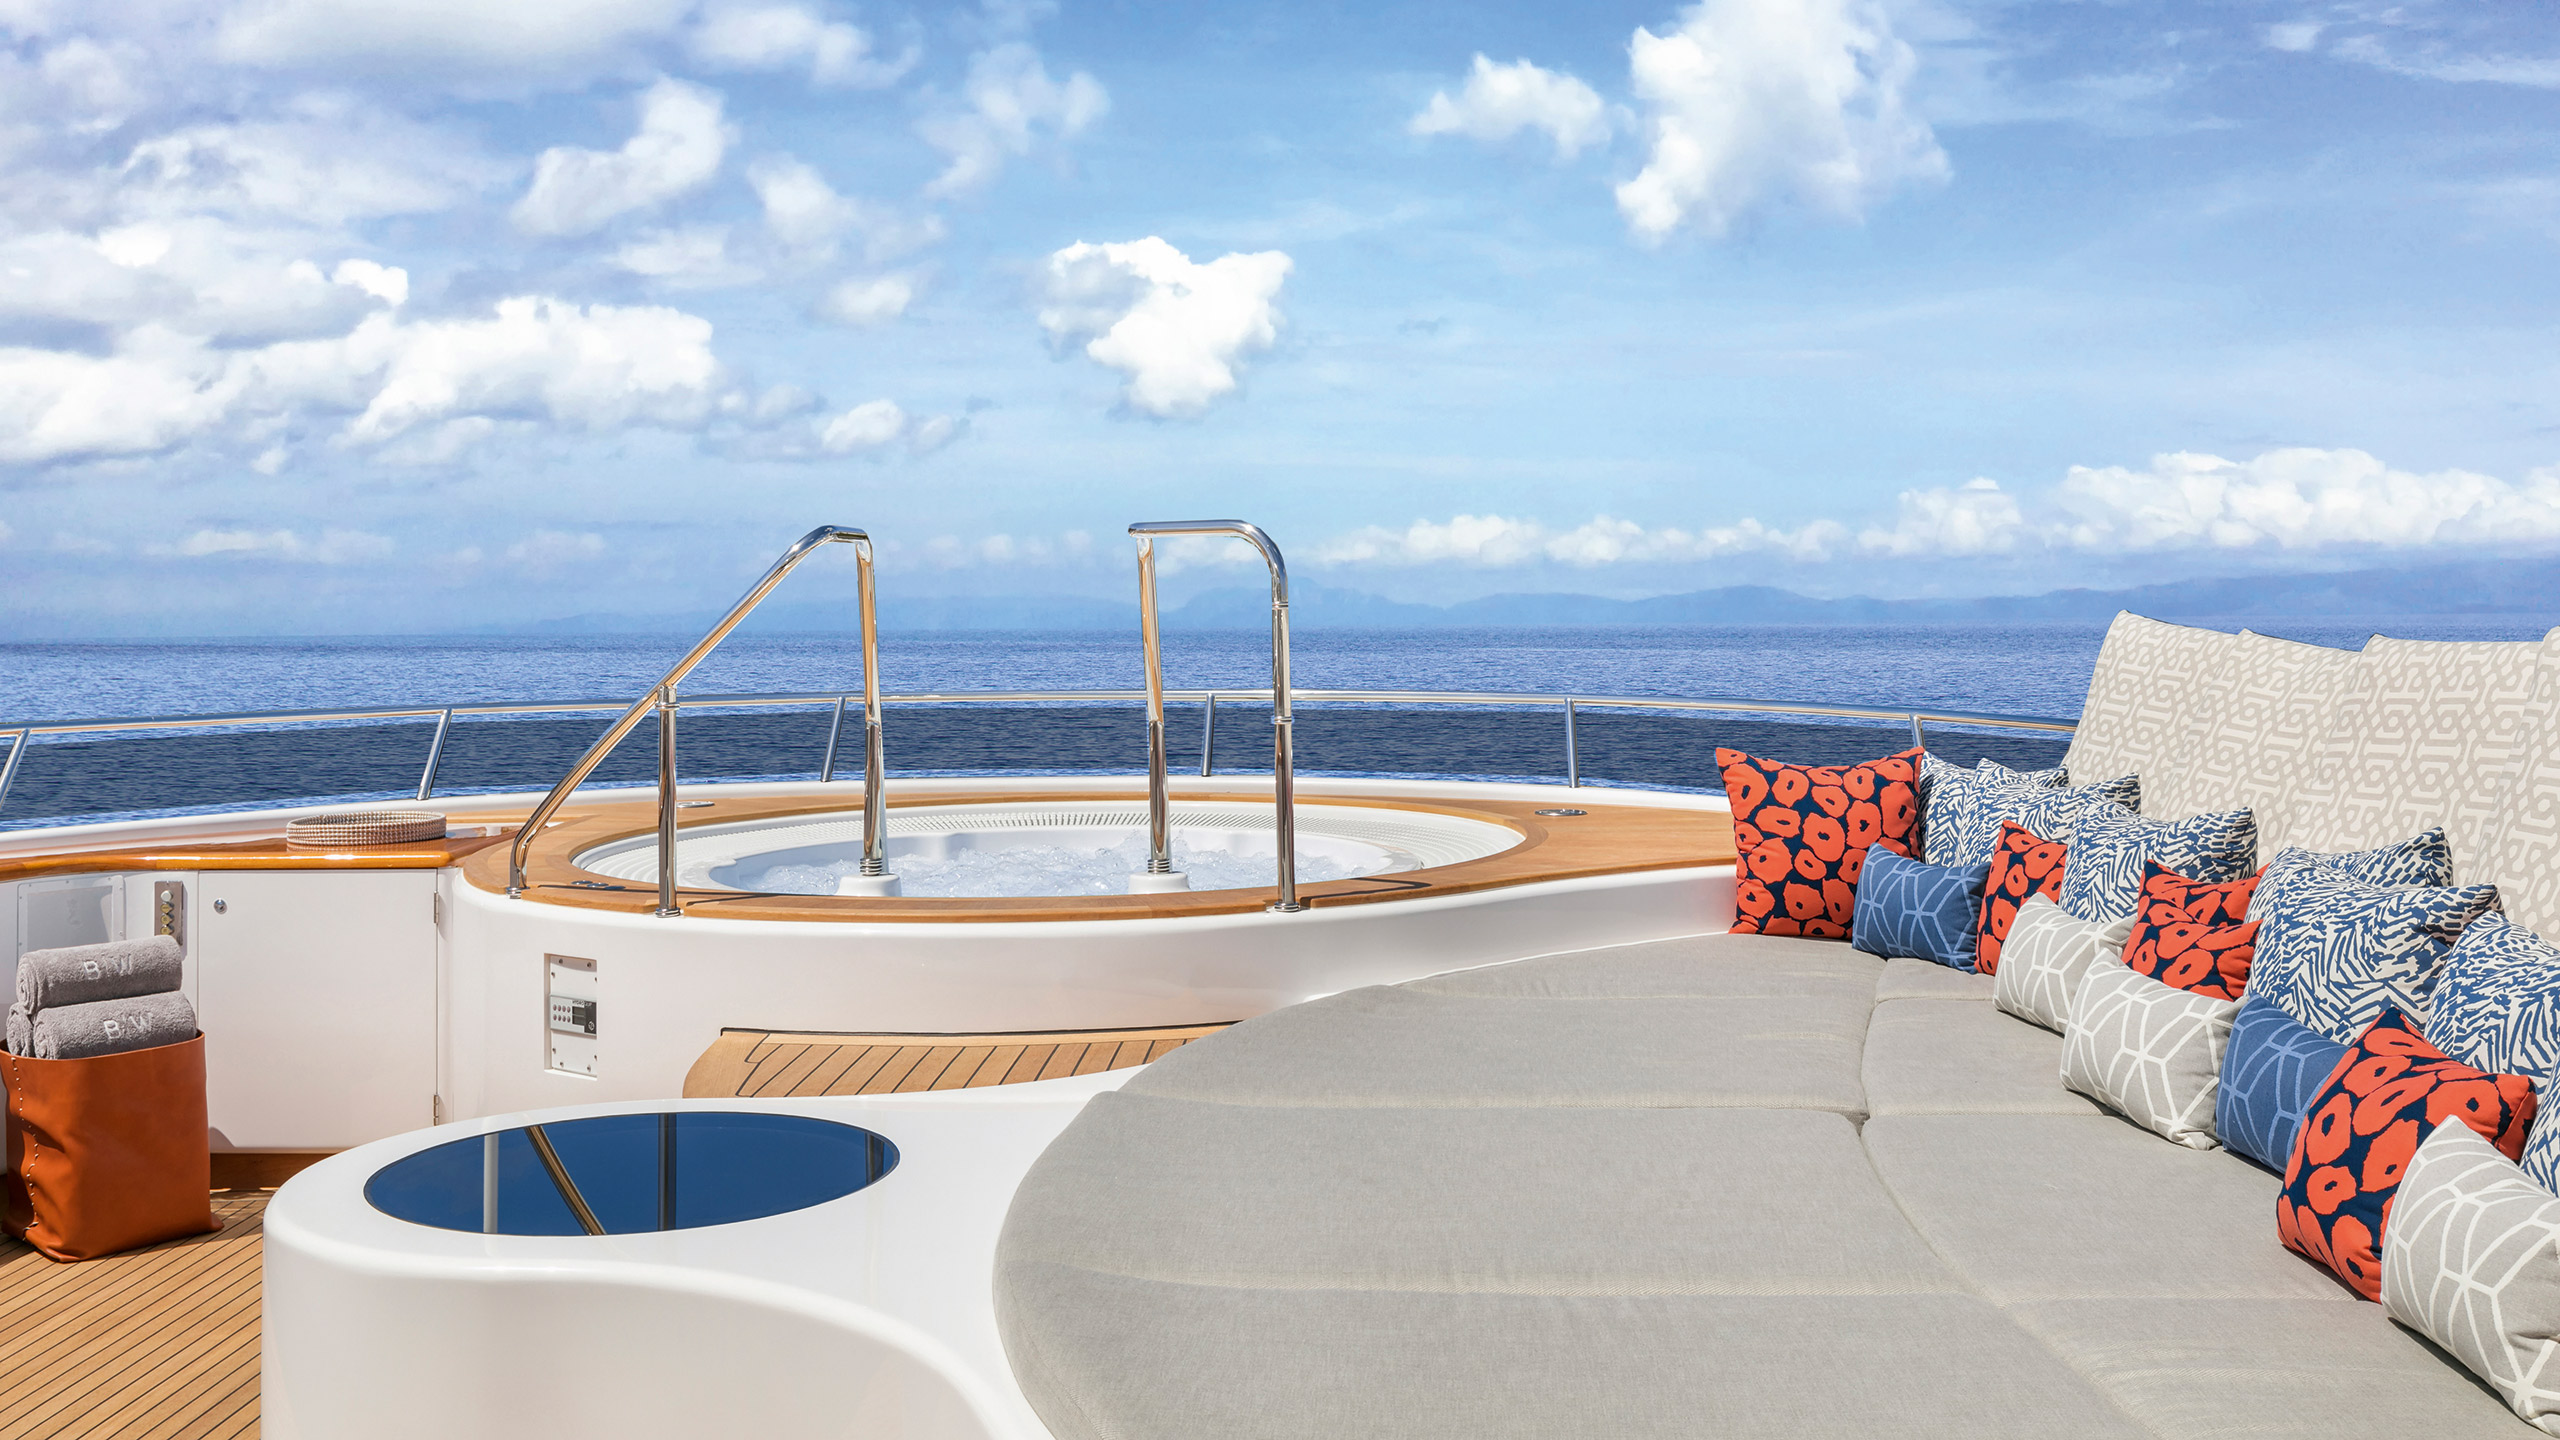 the-sundeck-of-the-feadship-superyacht-broadwater-after-her-lauderdale-marine-center-refit-credit-uneek